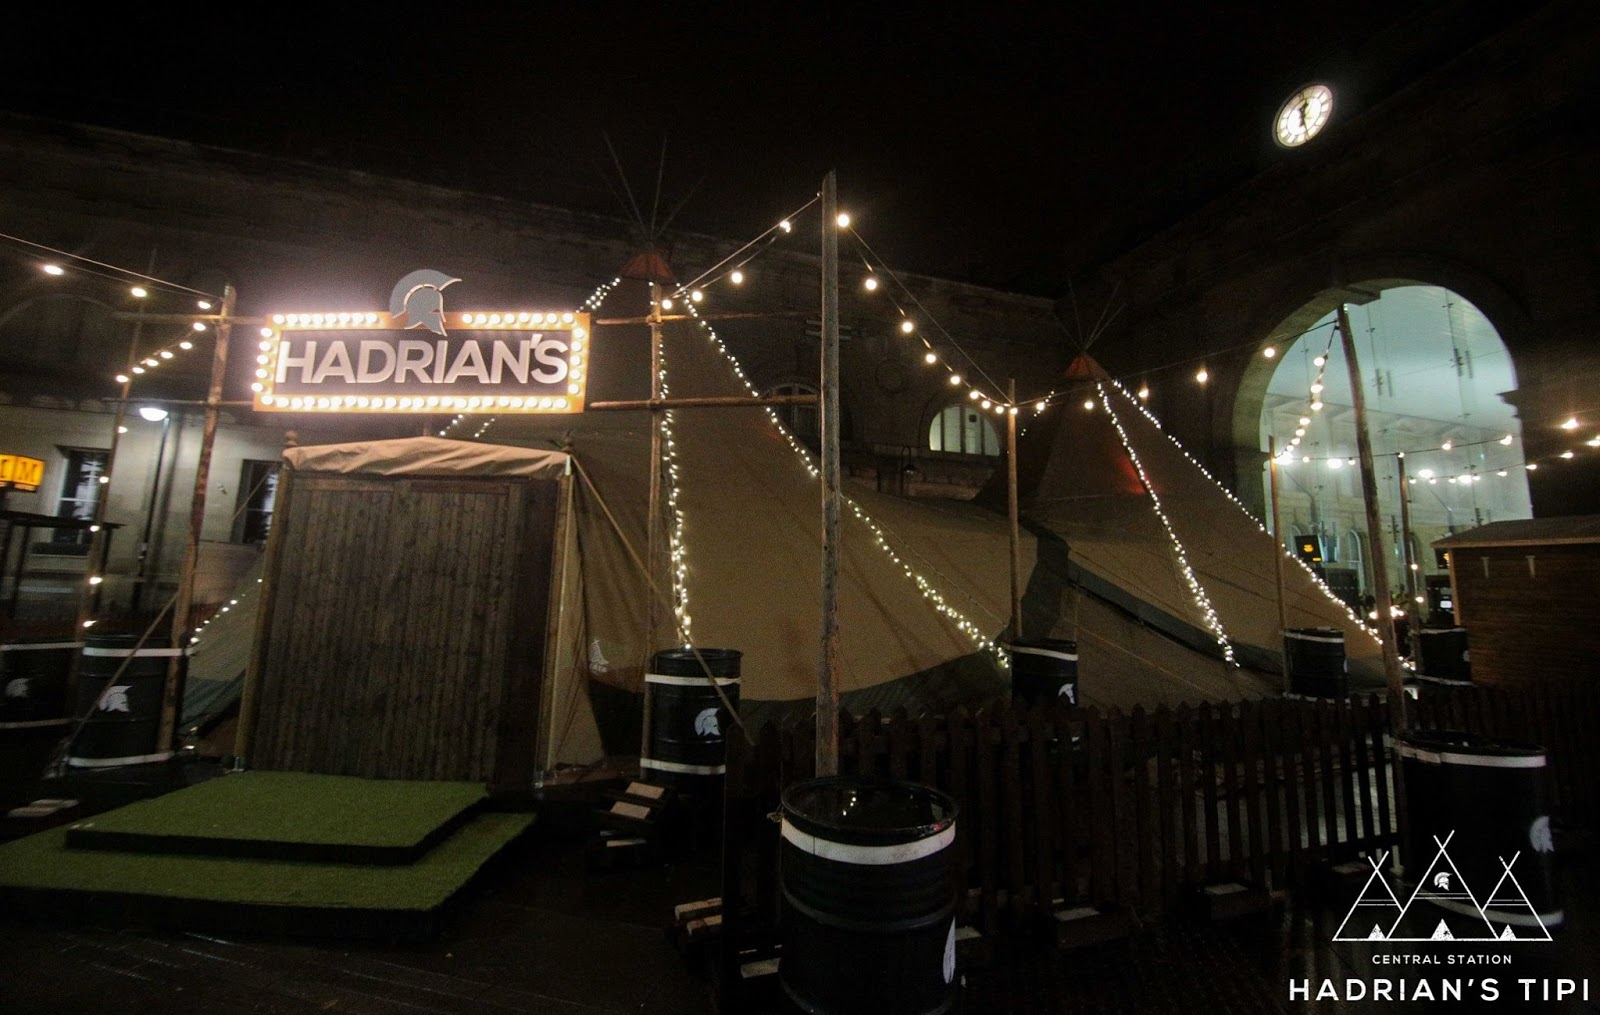 Hadrian's Tipi Opens at Central Station, Newcastle on 10th November 2016. Serving Mulled wine, spiced cider, hot chocolate & local food by warming log fires.